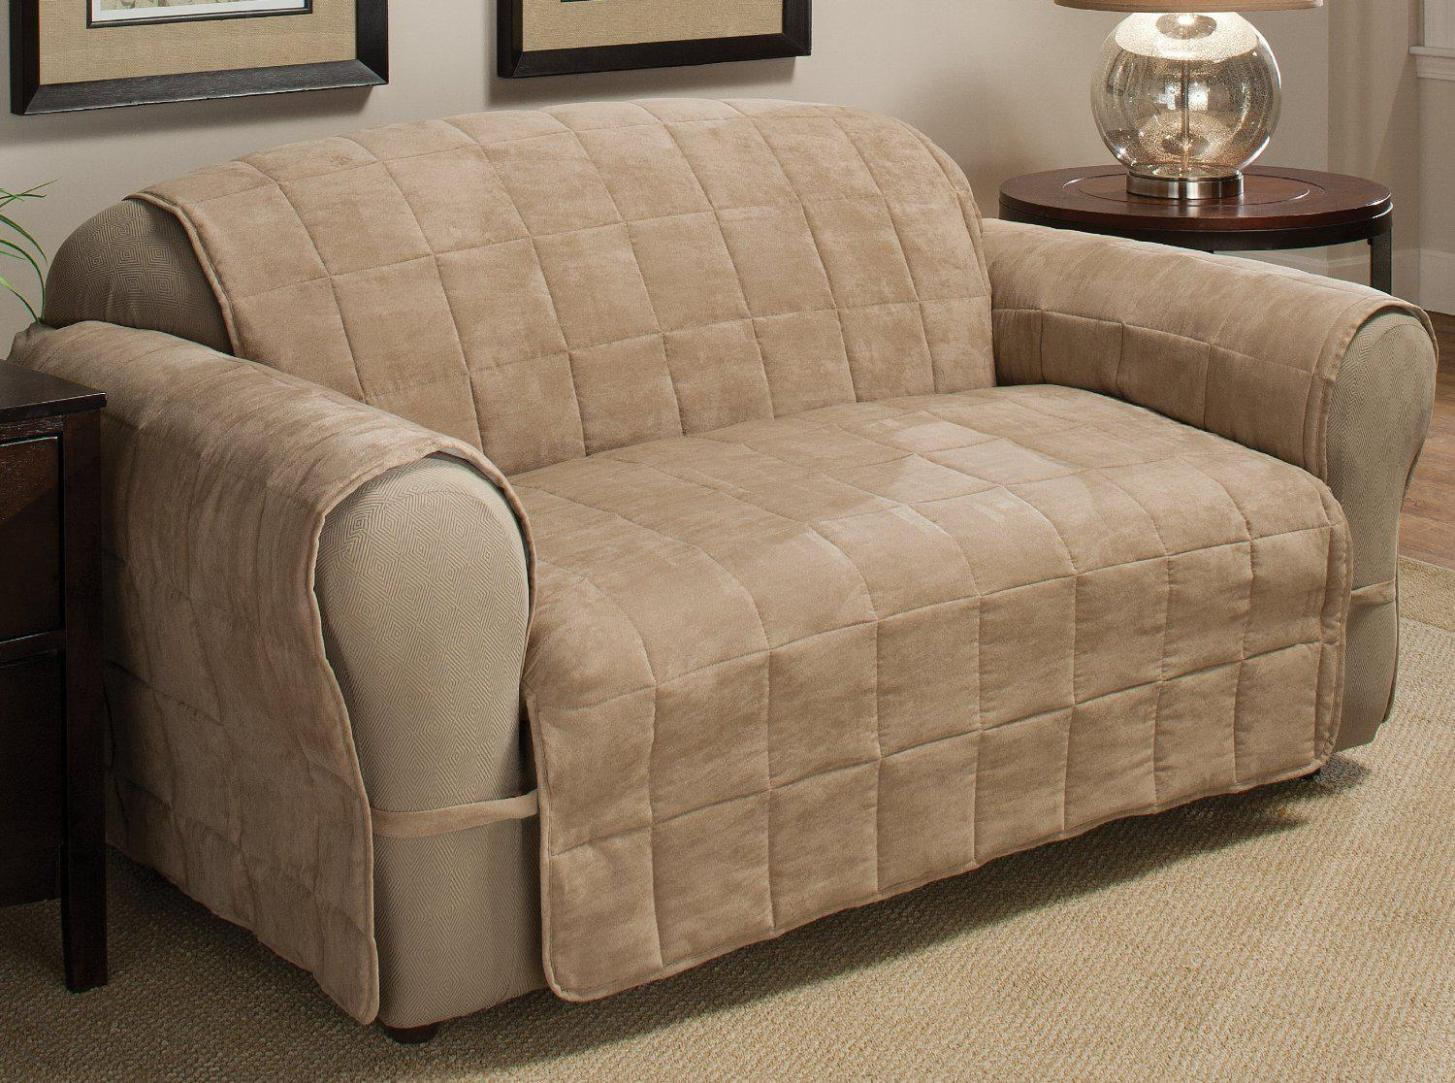 Image of: Furniture Slipcovers For Recliners